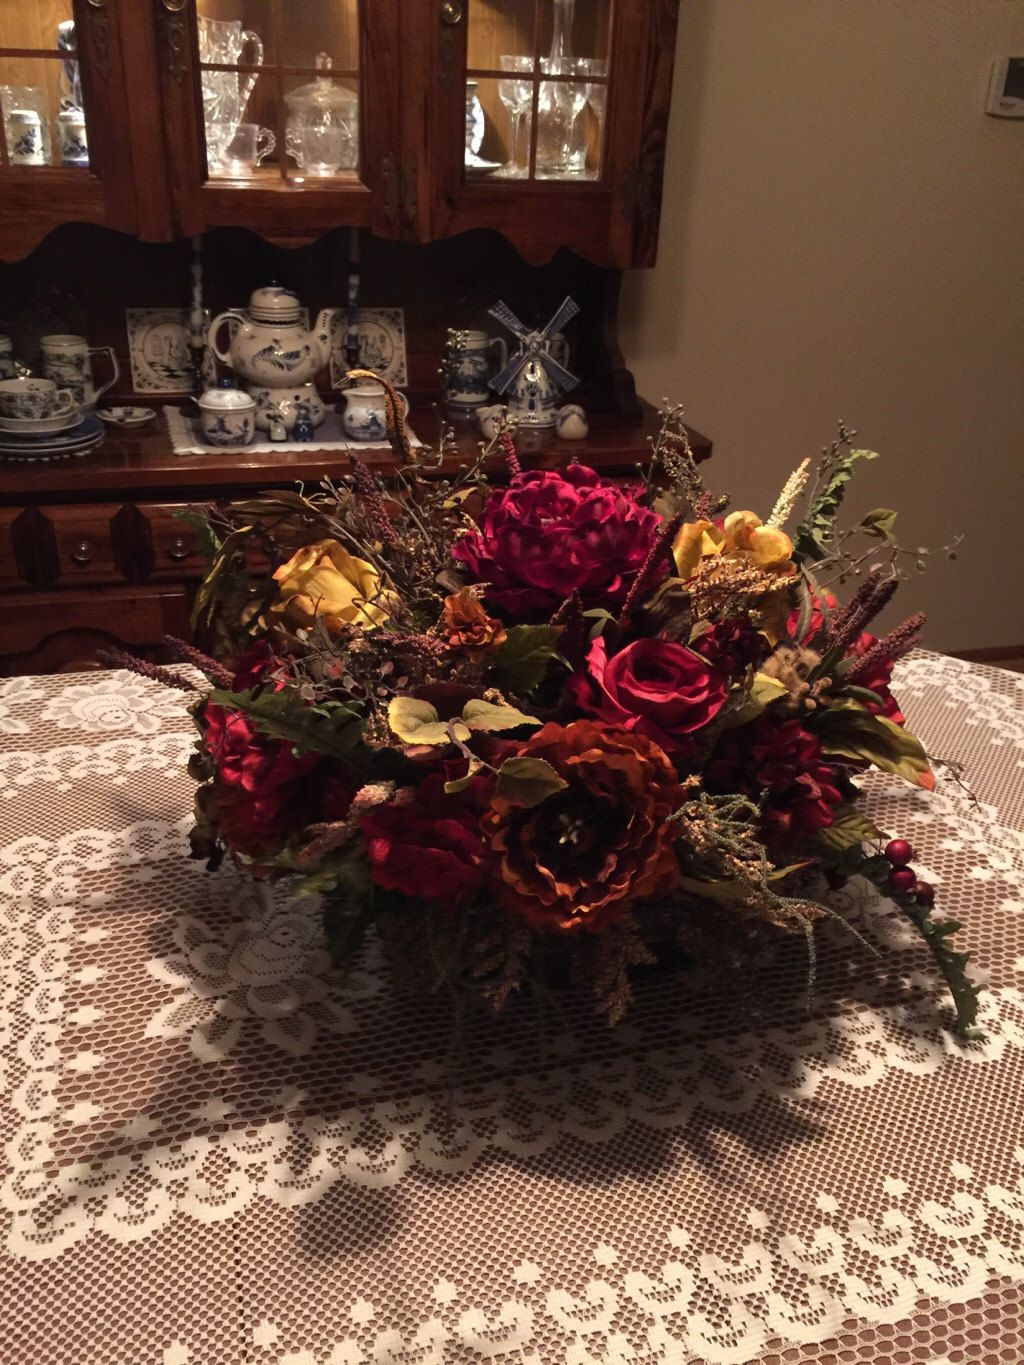 Floral Arrangement Large Tuscan Silk Basket SHIPPING INCLUDED Elegant Table Mantel Dining Room CenterpieceDining